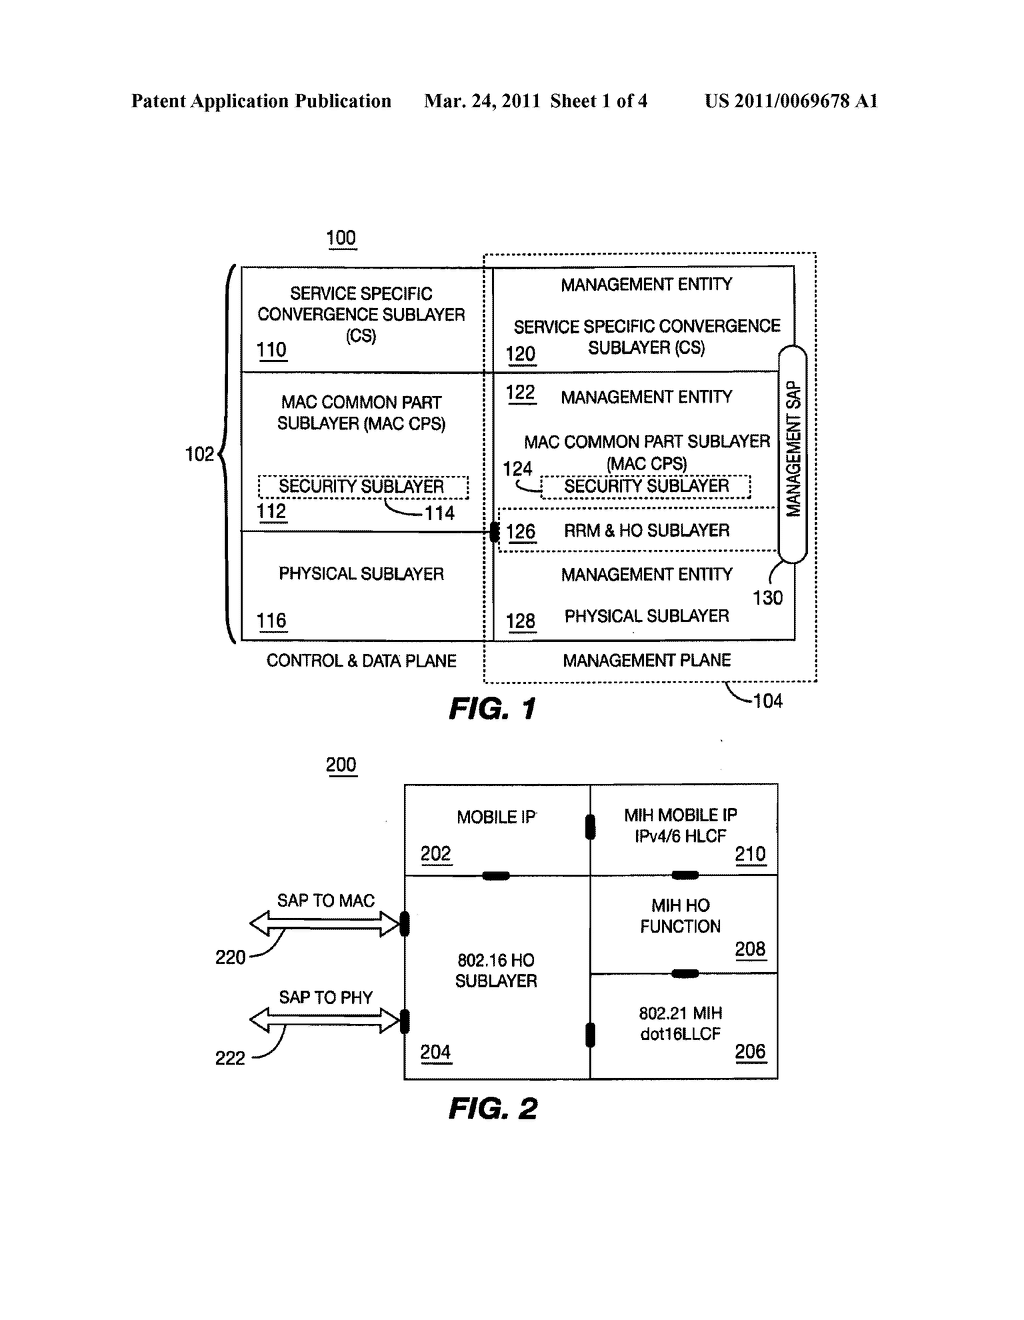 wireless metropolitan area network architecture for managing wireless metropolitan area network architecture for managing network resources and mobility diagram schematic and image 02